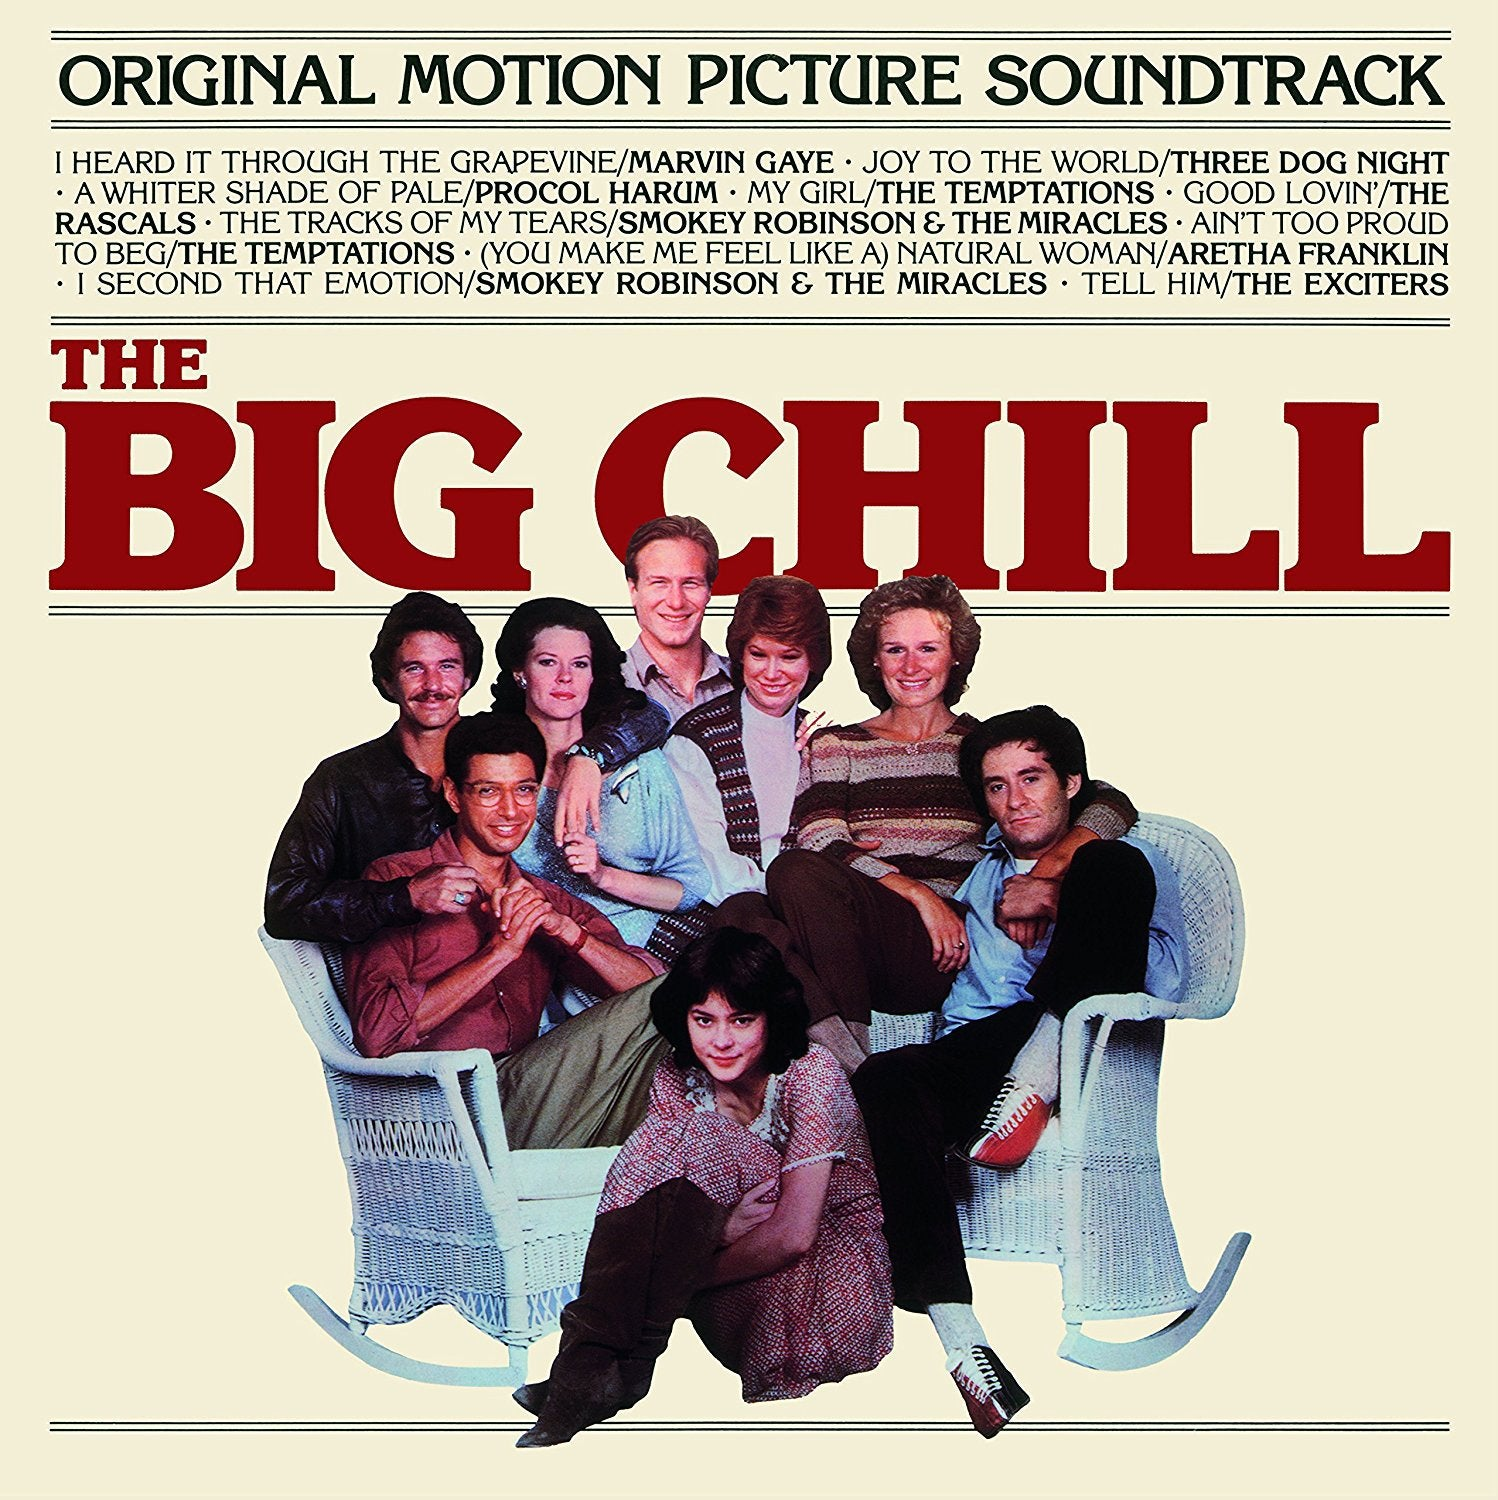 THE BIG CHILL - ORIGINAL MOTION PICTURE SOUNDTRACK - LTD EDITON COLOR VINYL LP - Wah Wah Records